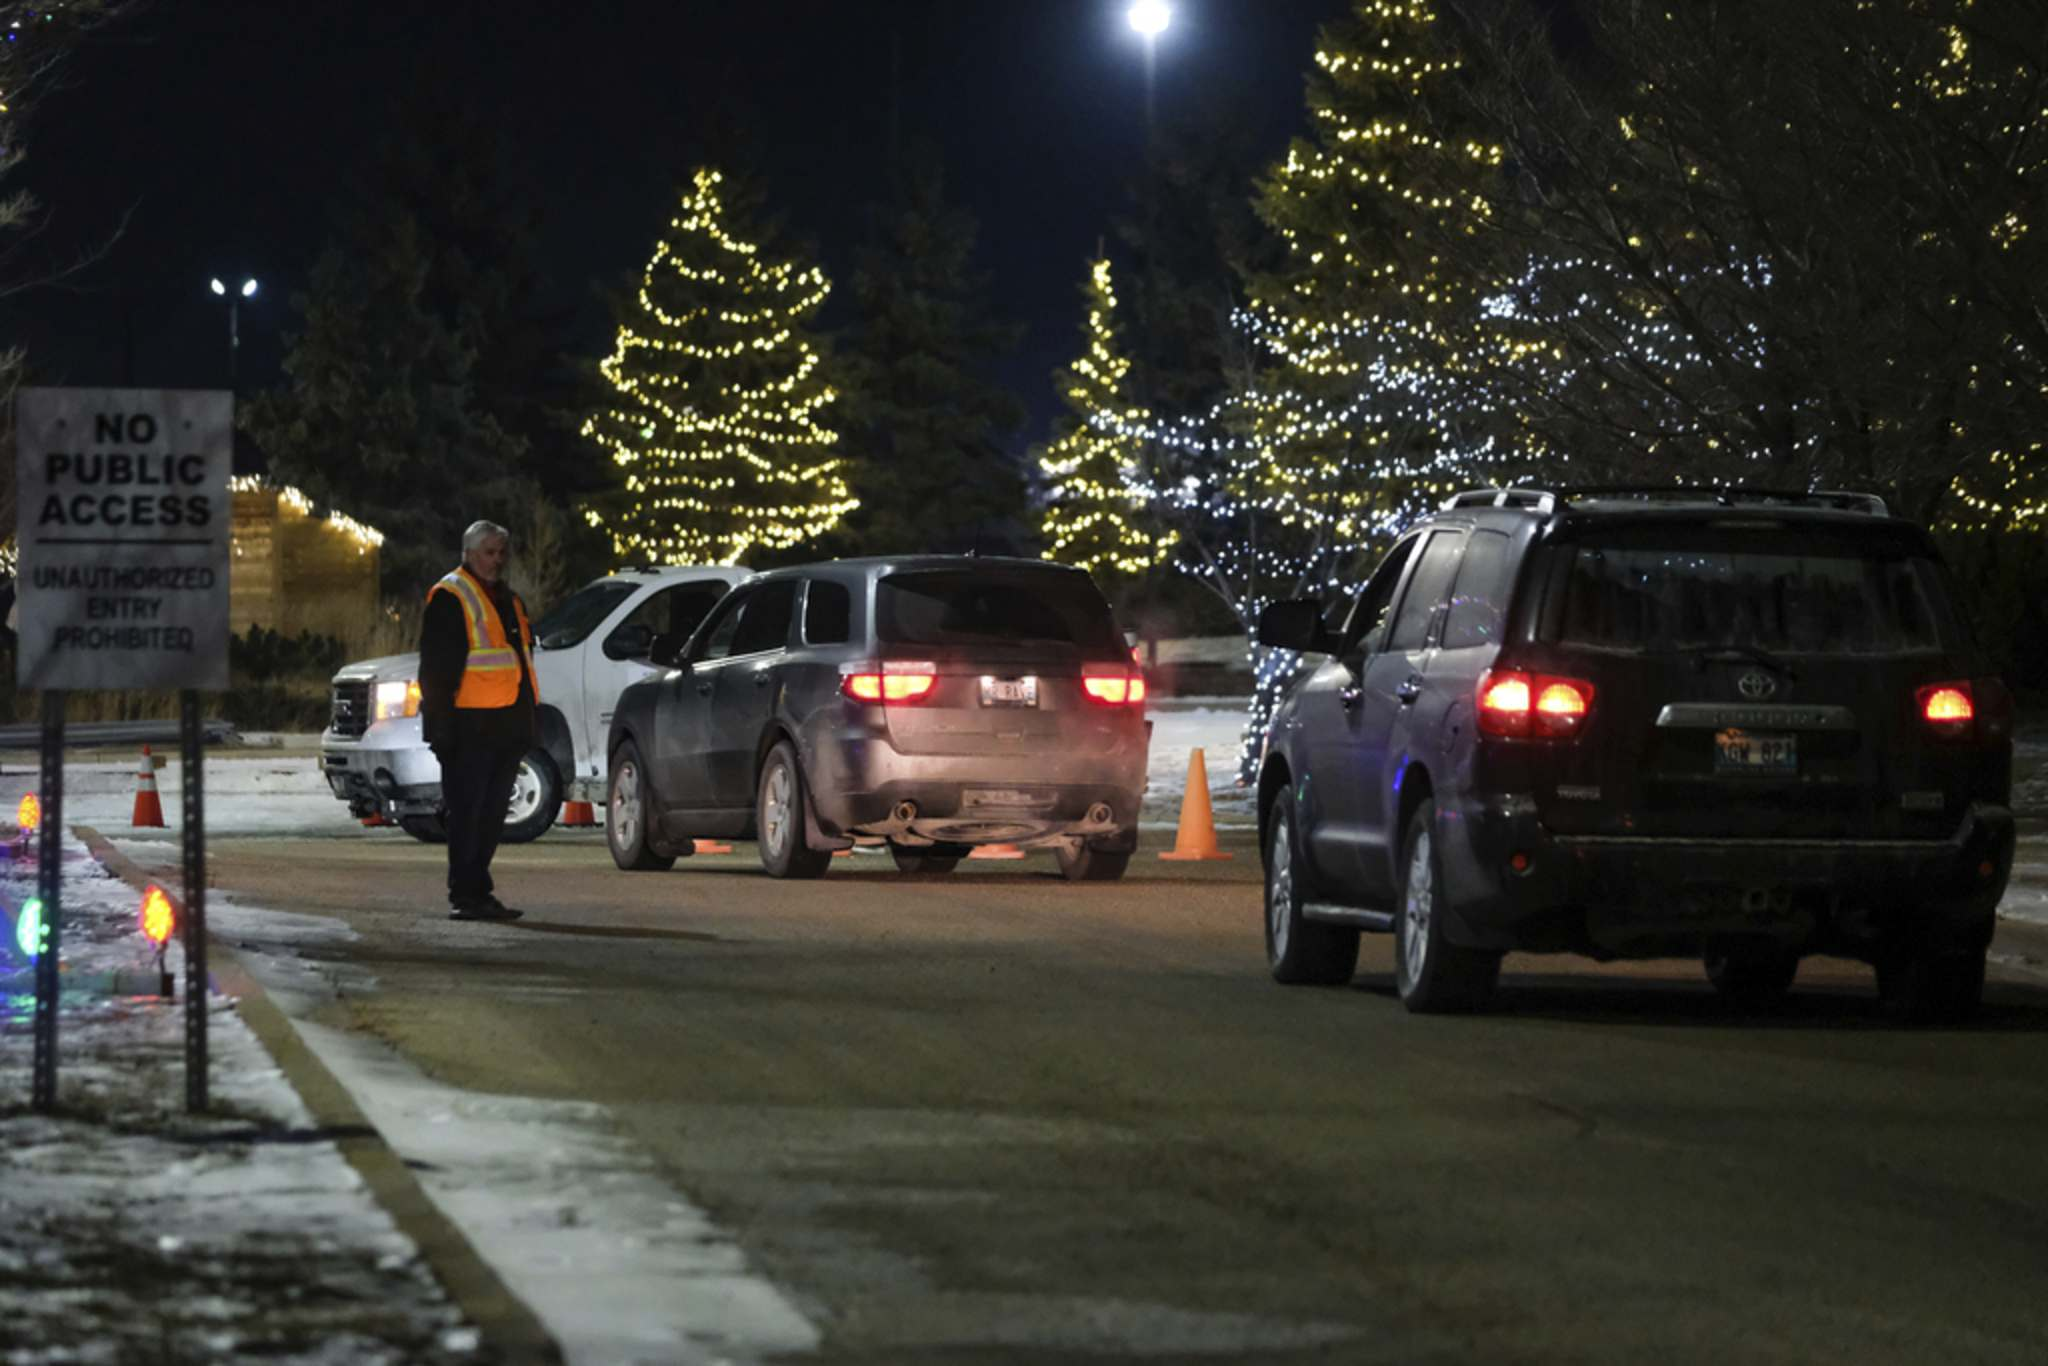 Daniel Crump / Winnipeg Free Press</p><p>Church Springs private security stands guard as vehicles line up to attend a drive-in church service on Saturday.</p>